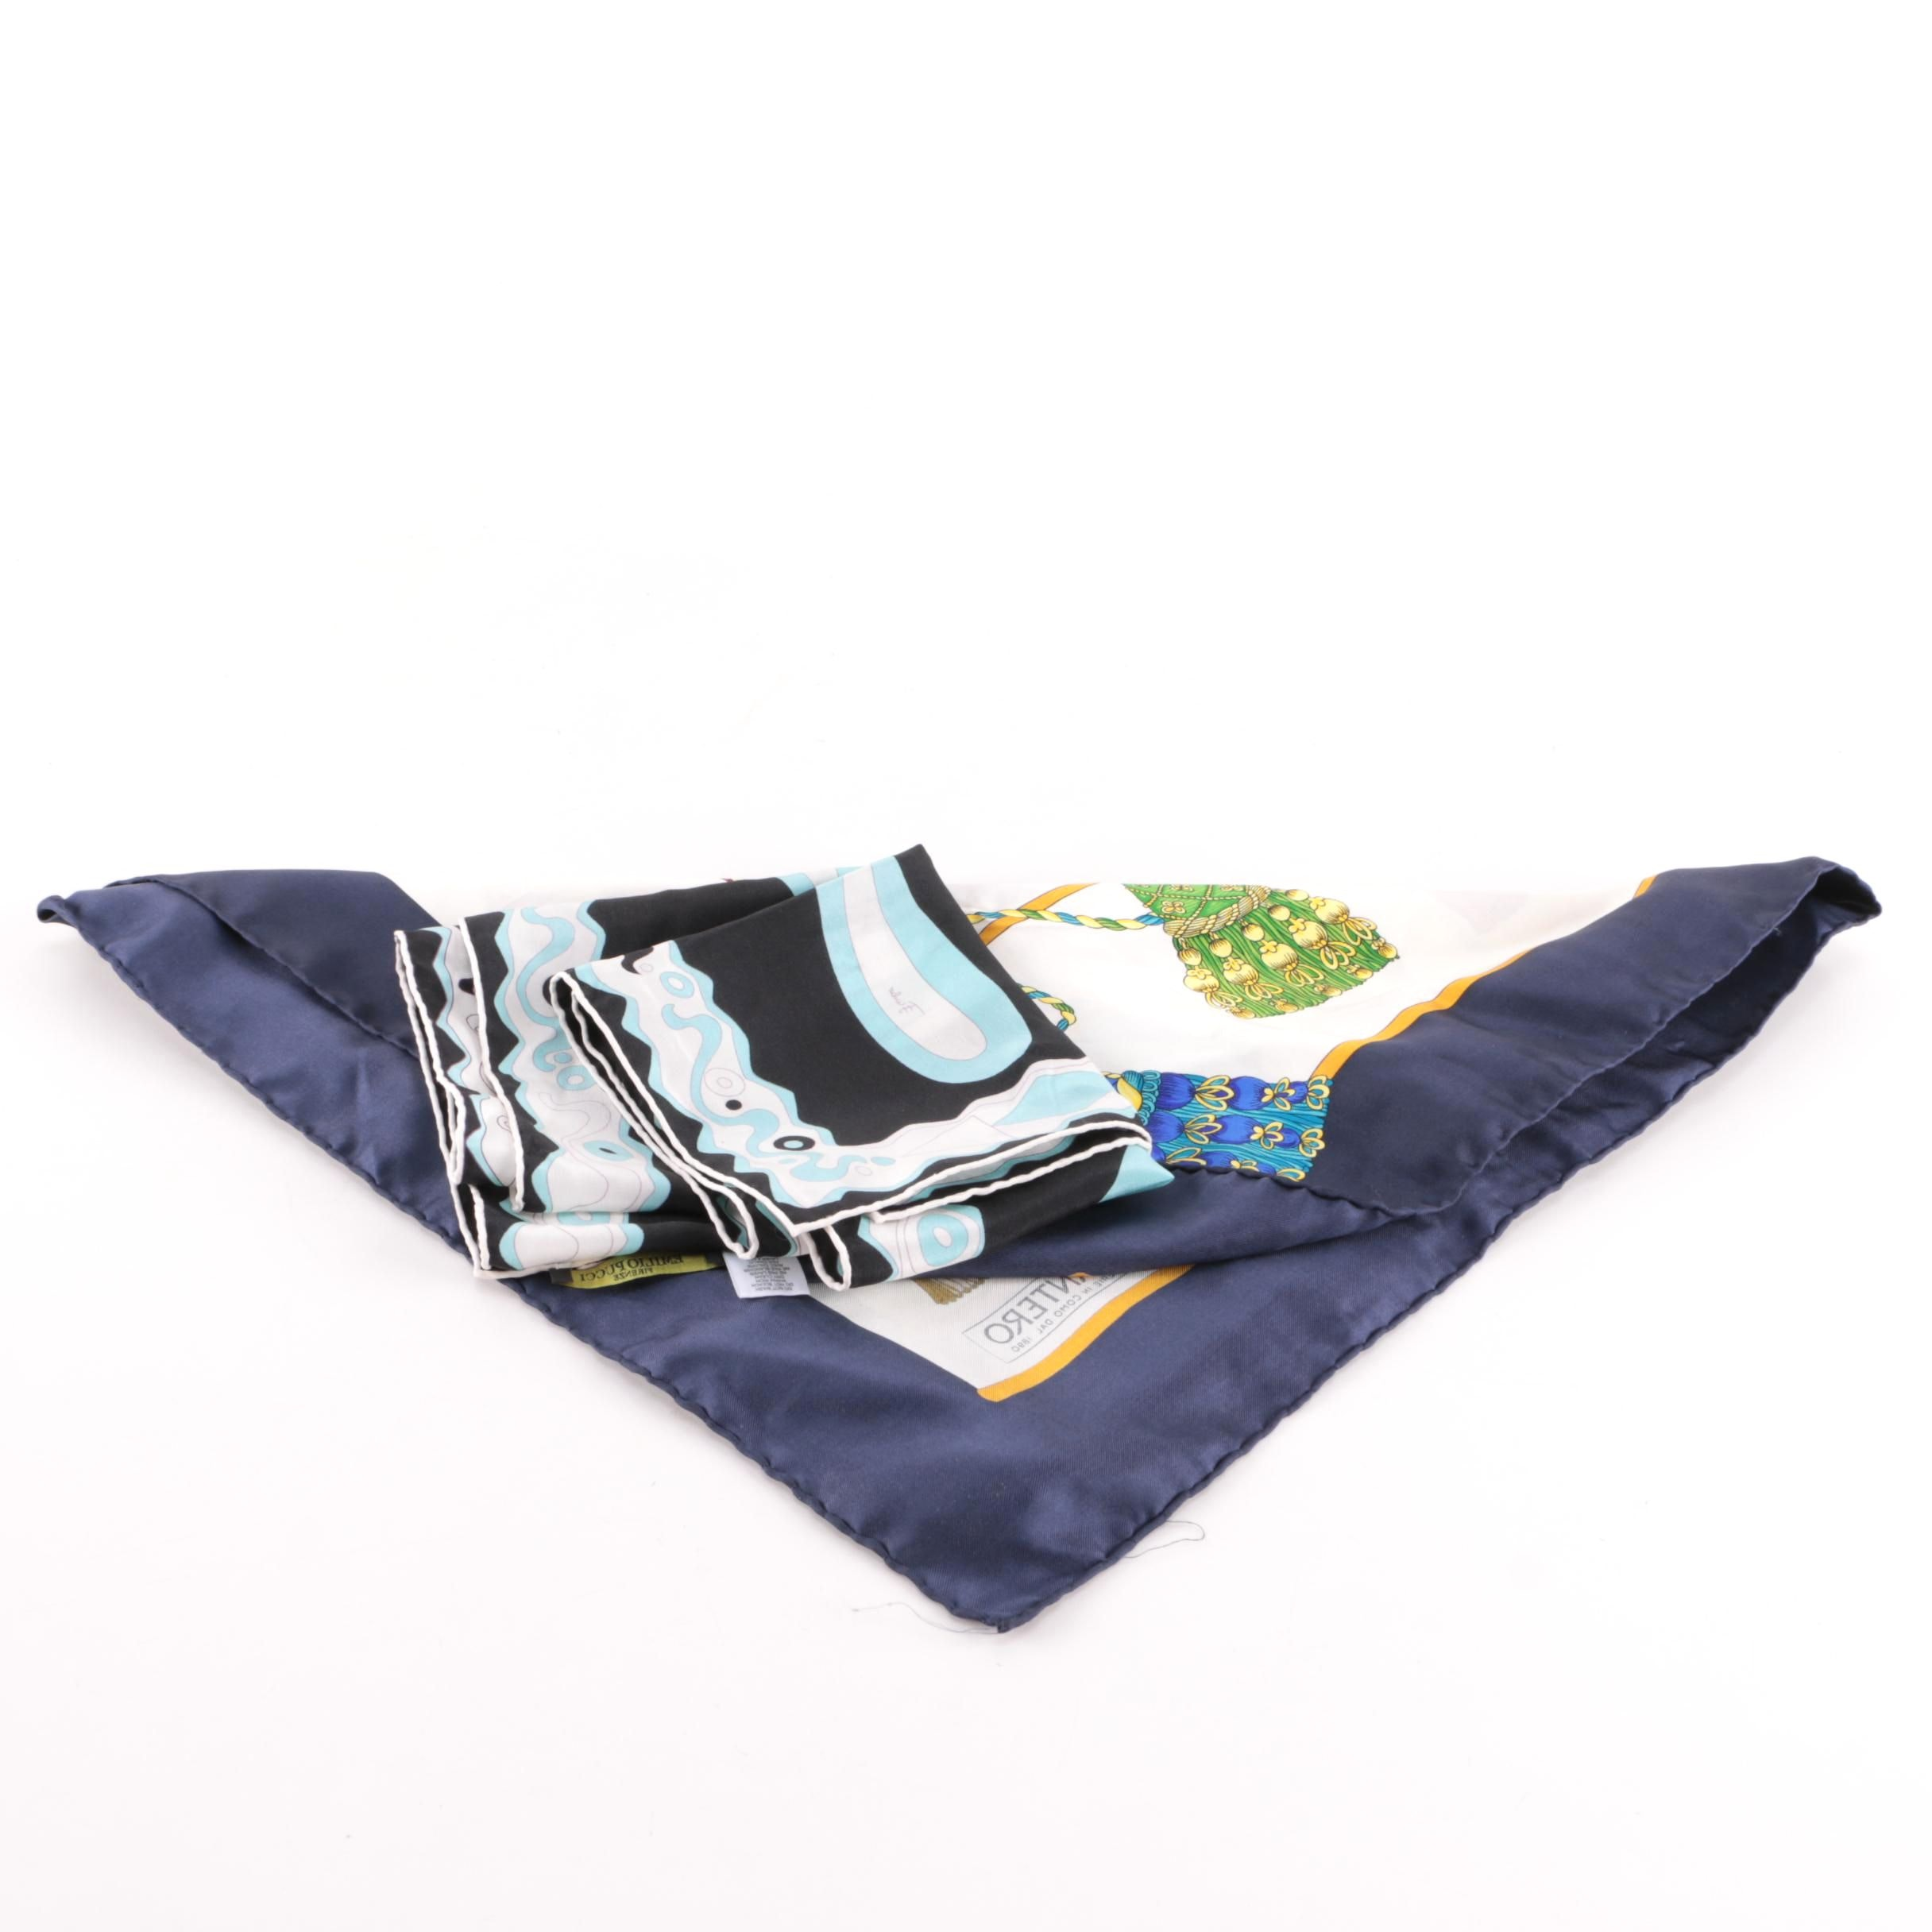 Emilio Pucci and Mantero Silk Scarves